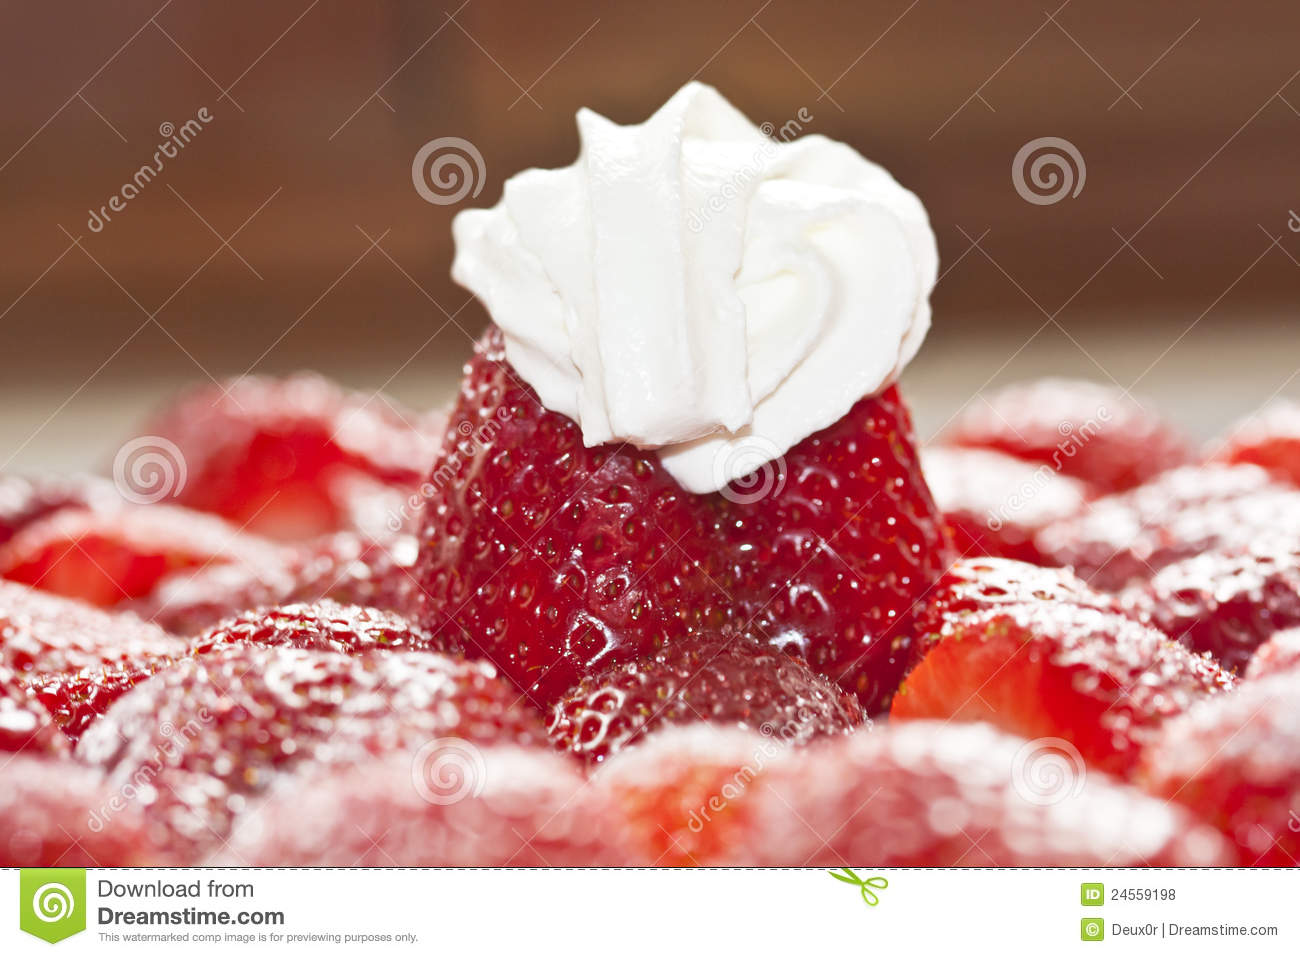 Sweet Strawberry Cake With Whipped Cream Royalty Free Stock Photos ...